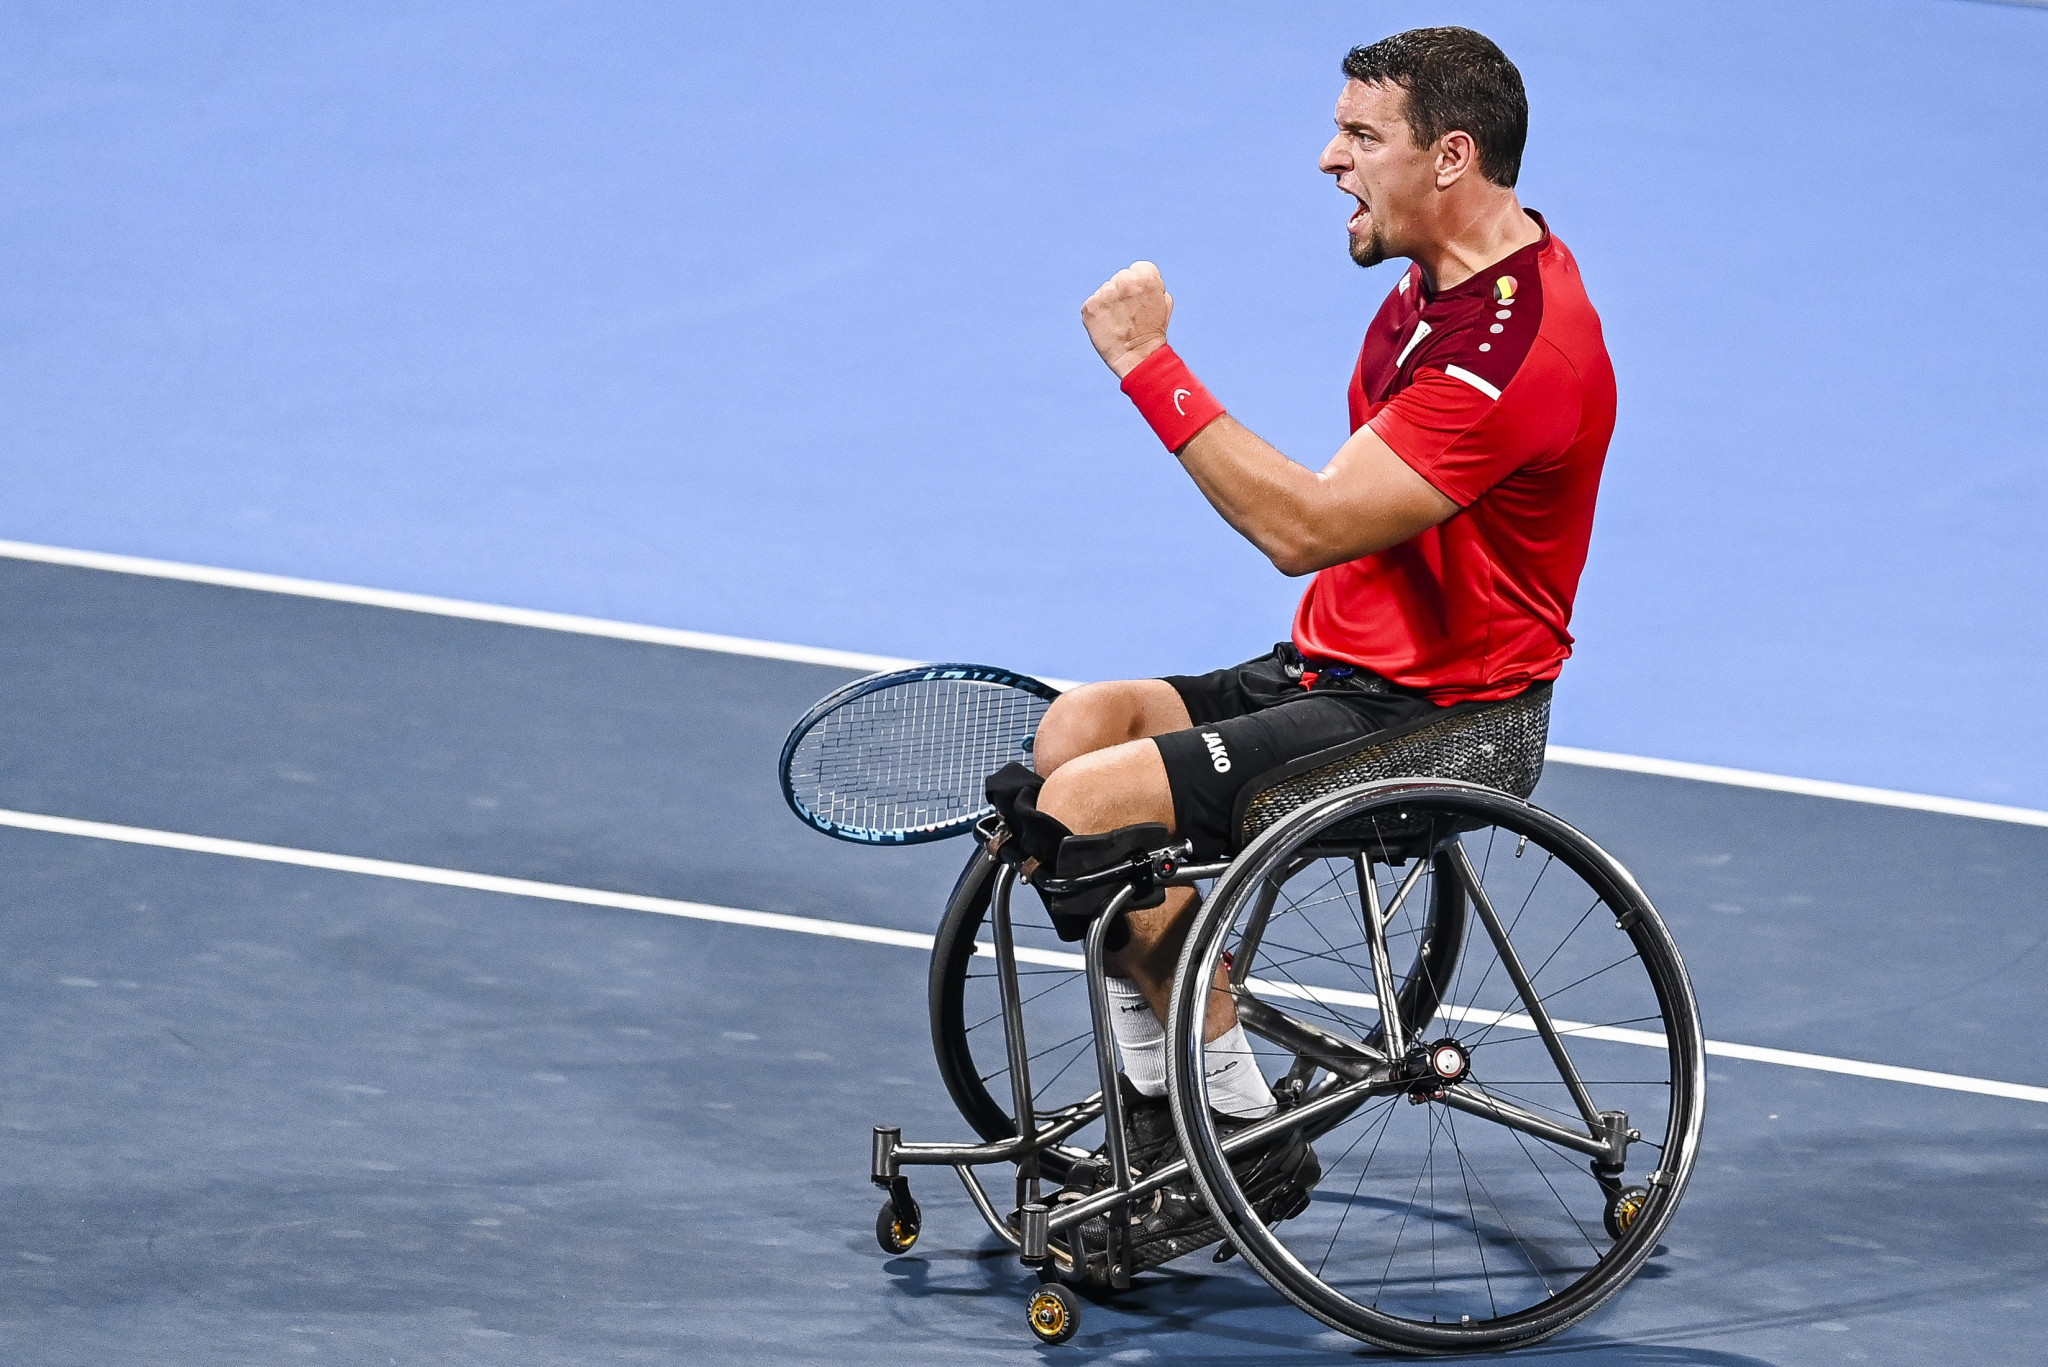 Wheelchair tennis player Joachim Gérard remains in hospital after suffering from suspected cardiac issues ©Getty Images